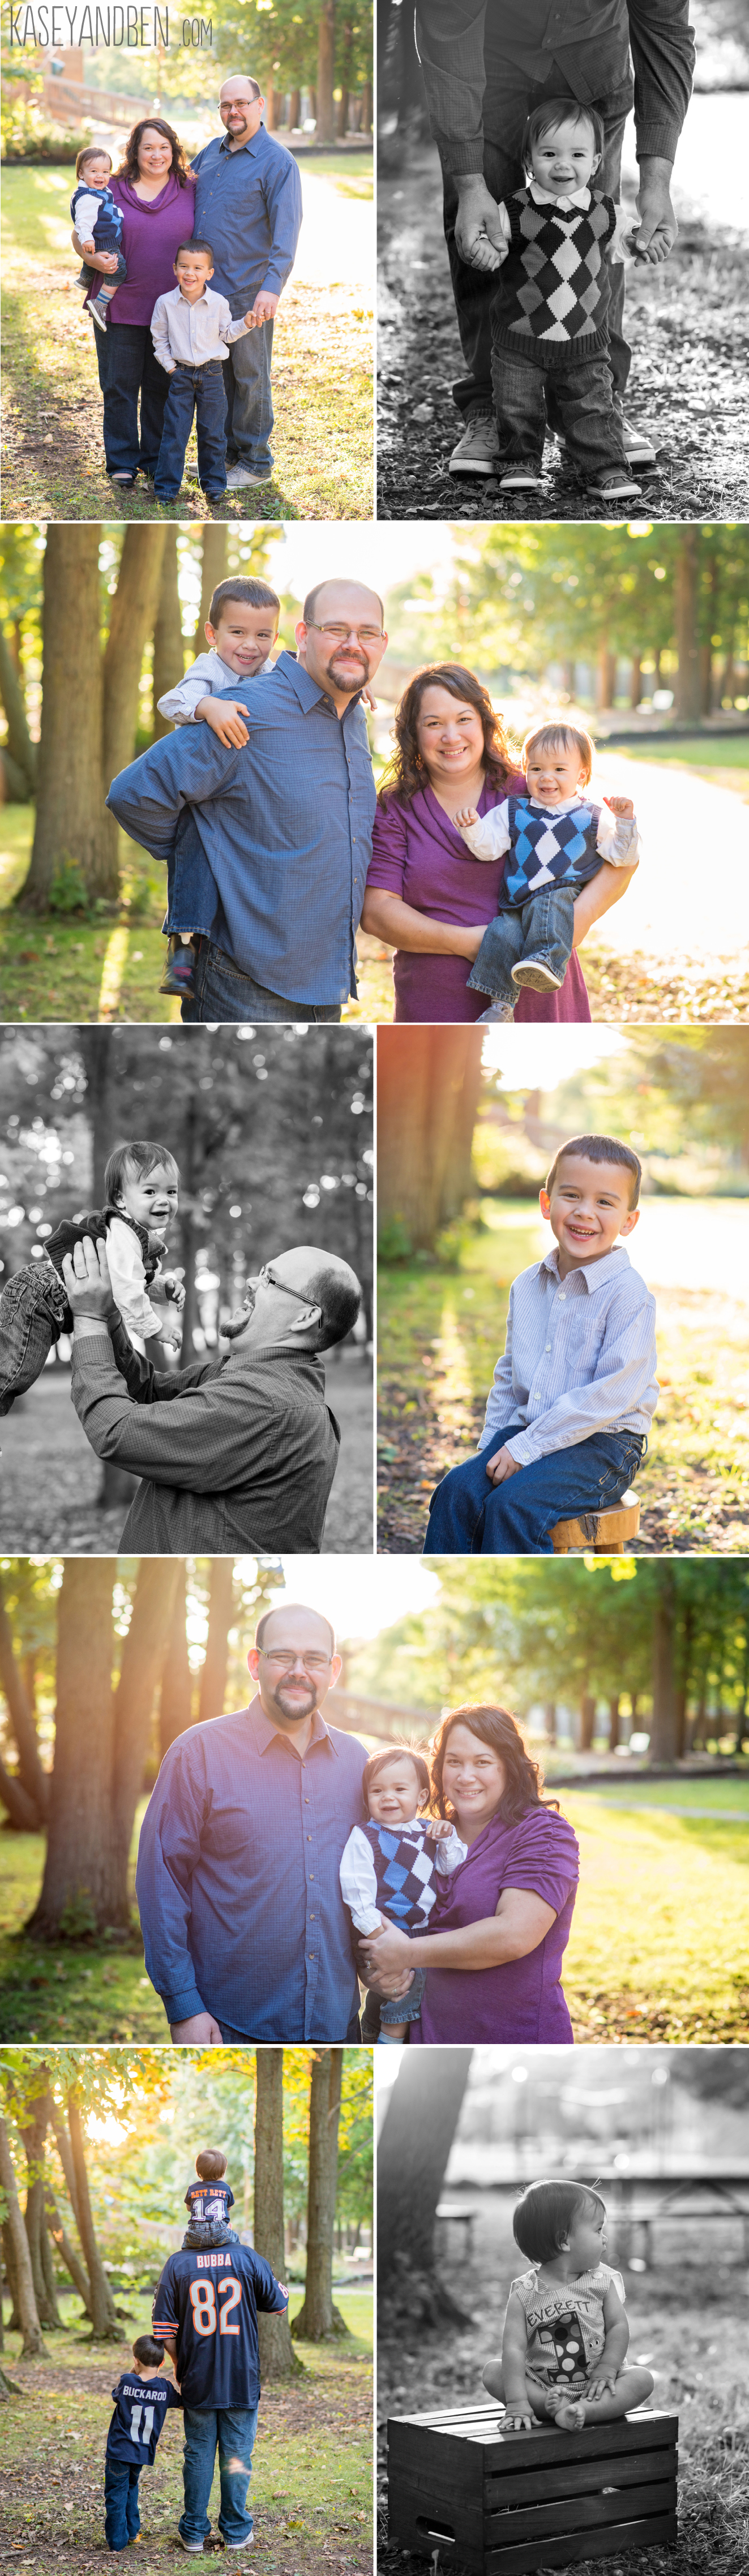 Green-Bay-Family-Photography-Fall-Photographer-Bay-Shore-Park-Kids-Children